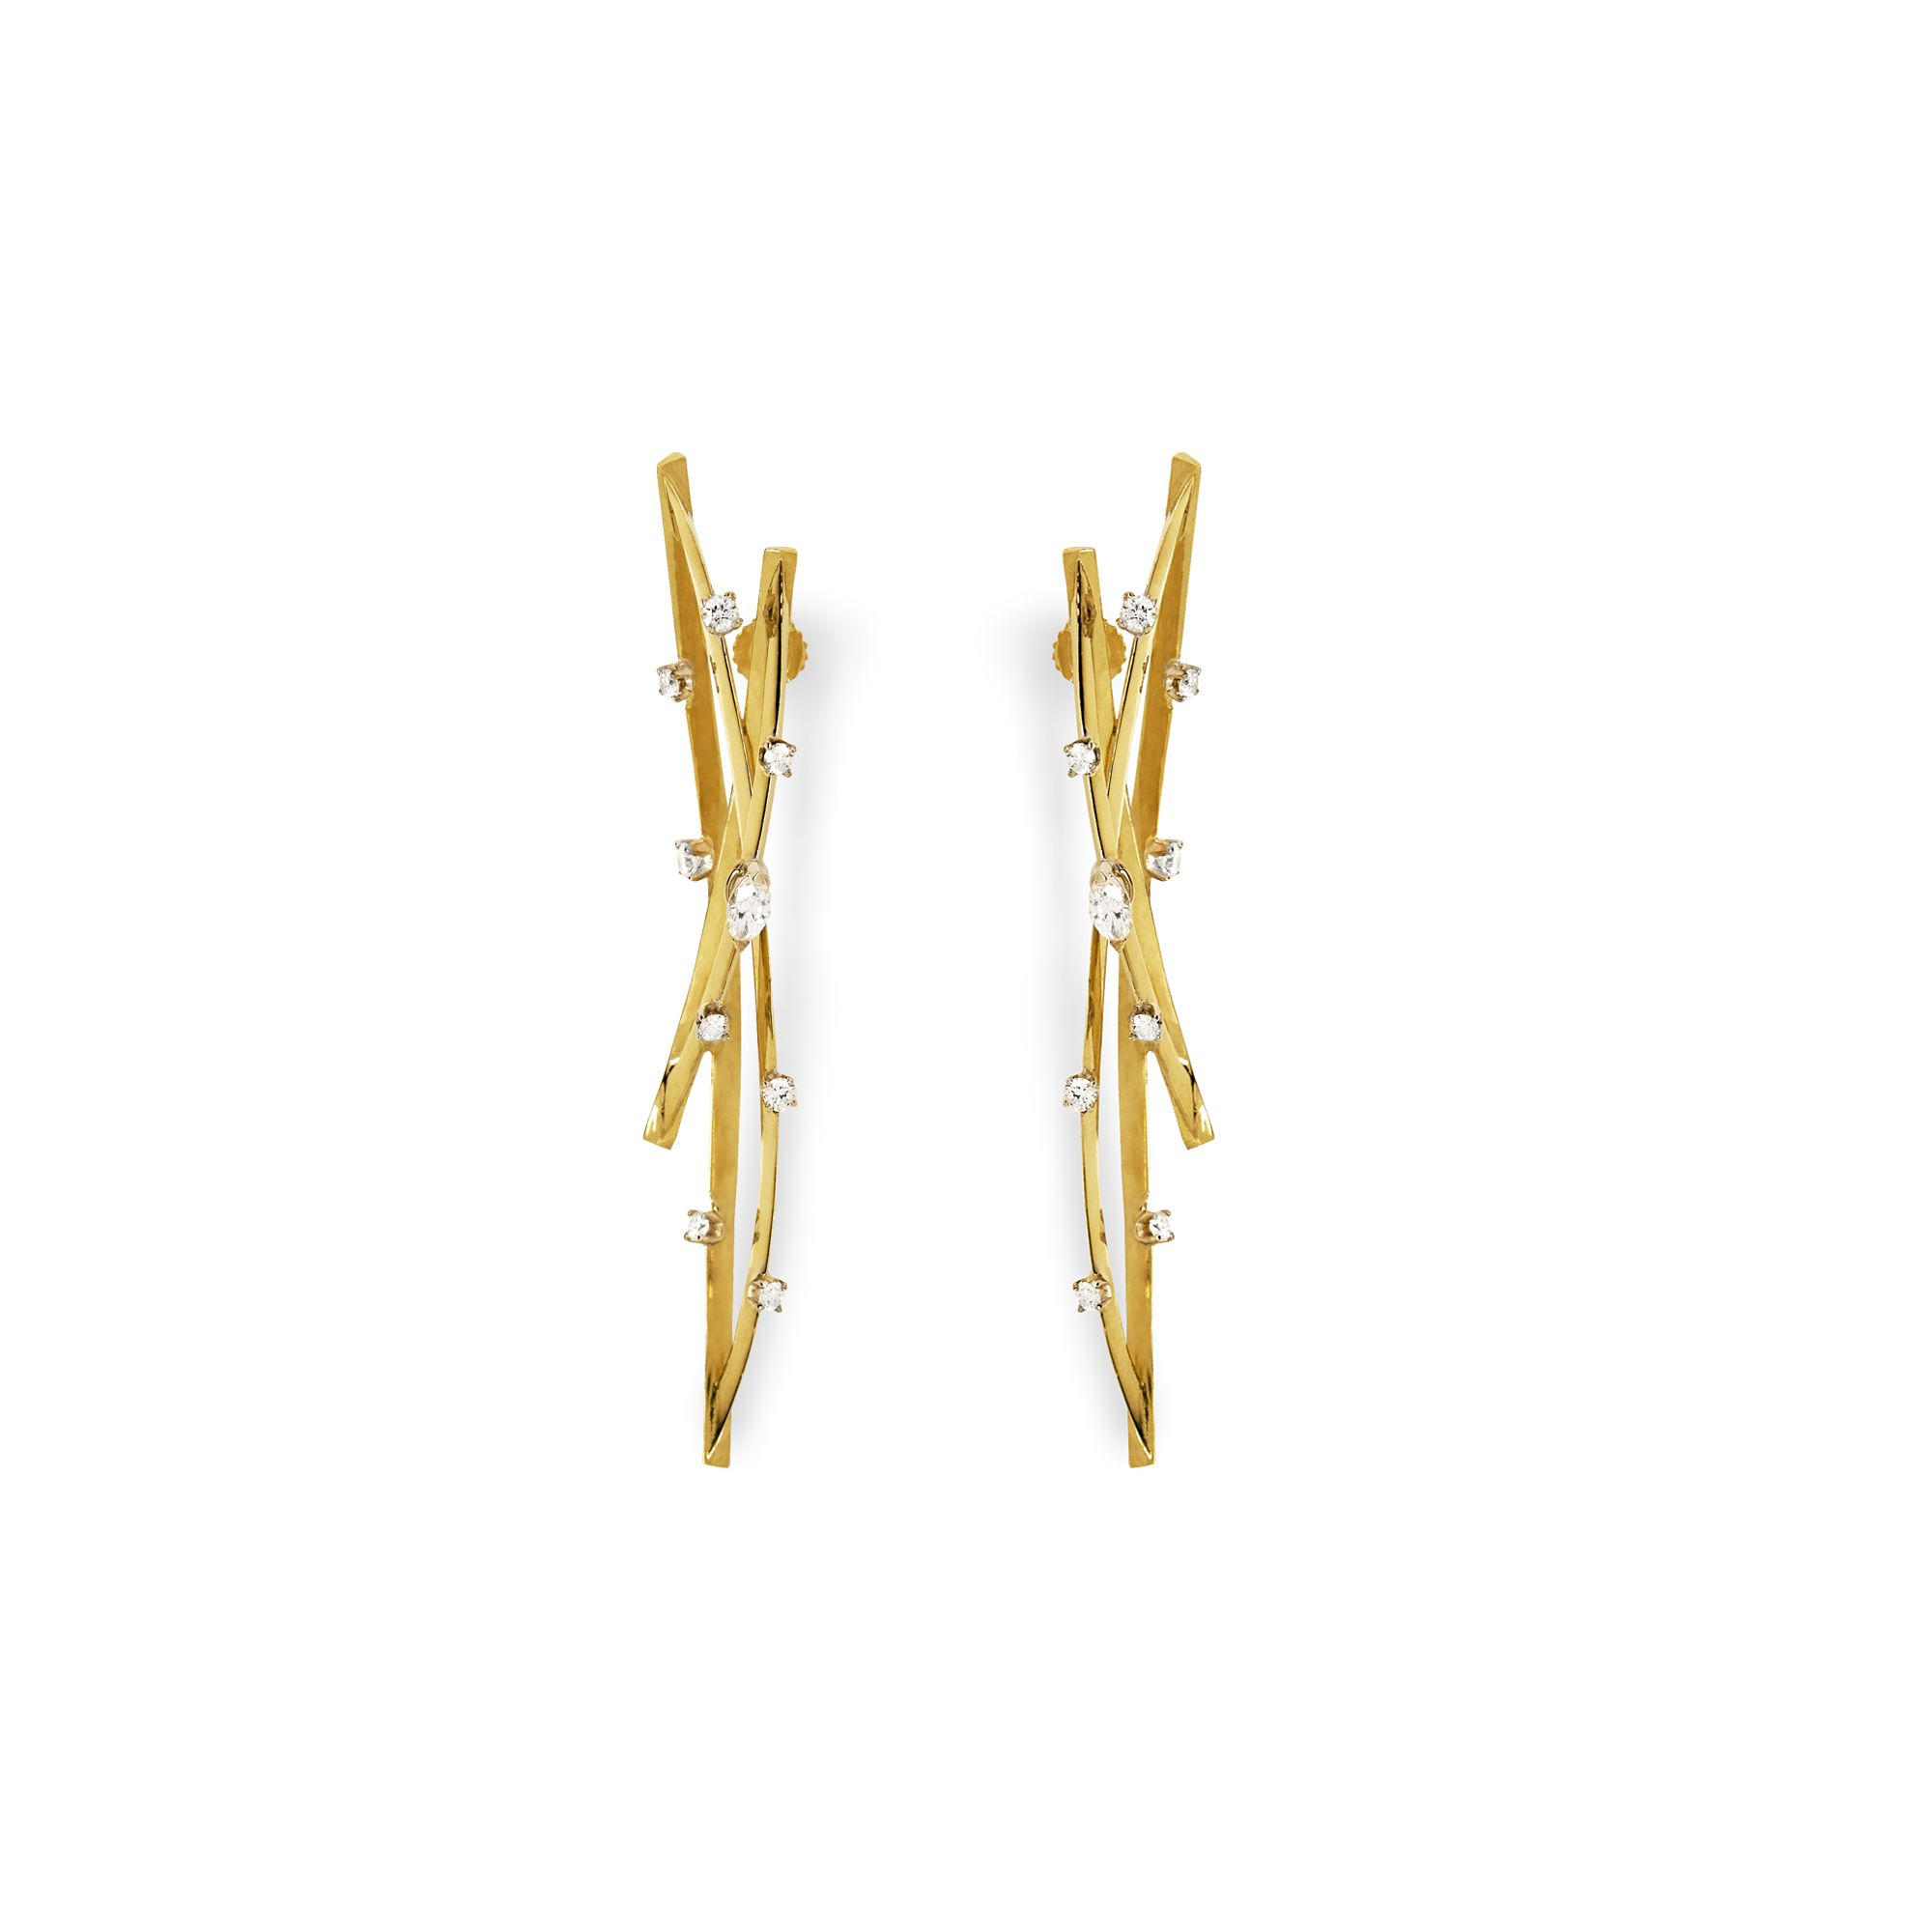 Double orbit earrings Earrings in yellow gold and diamonds